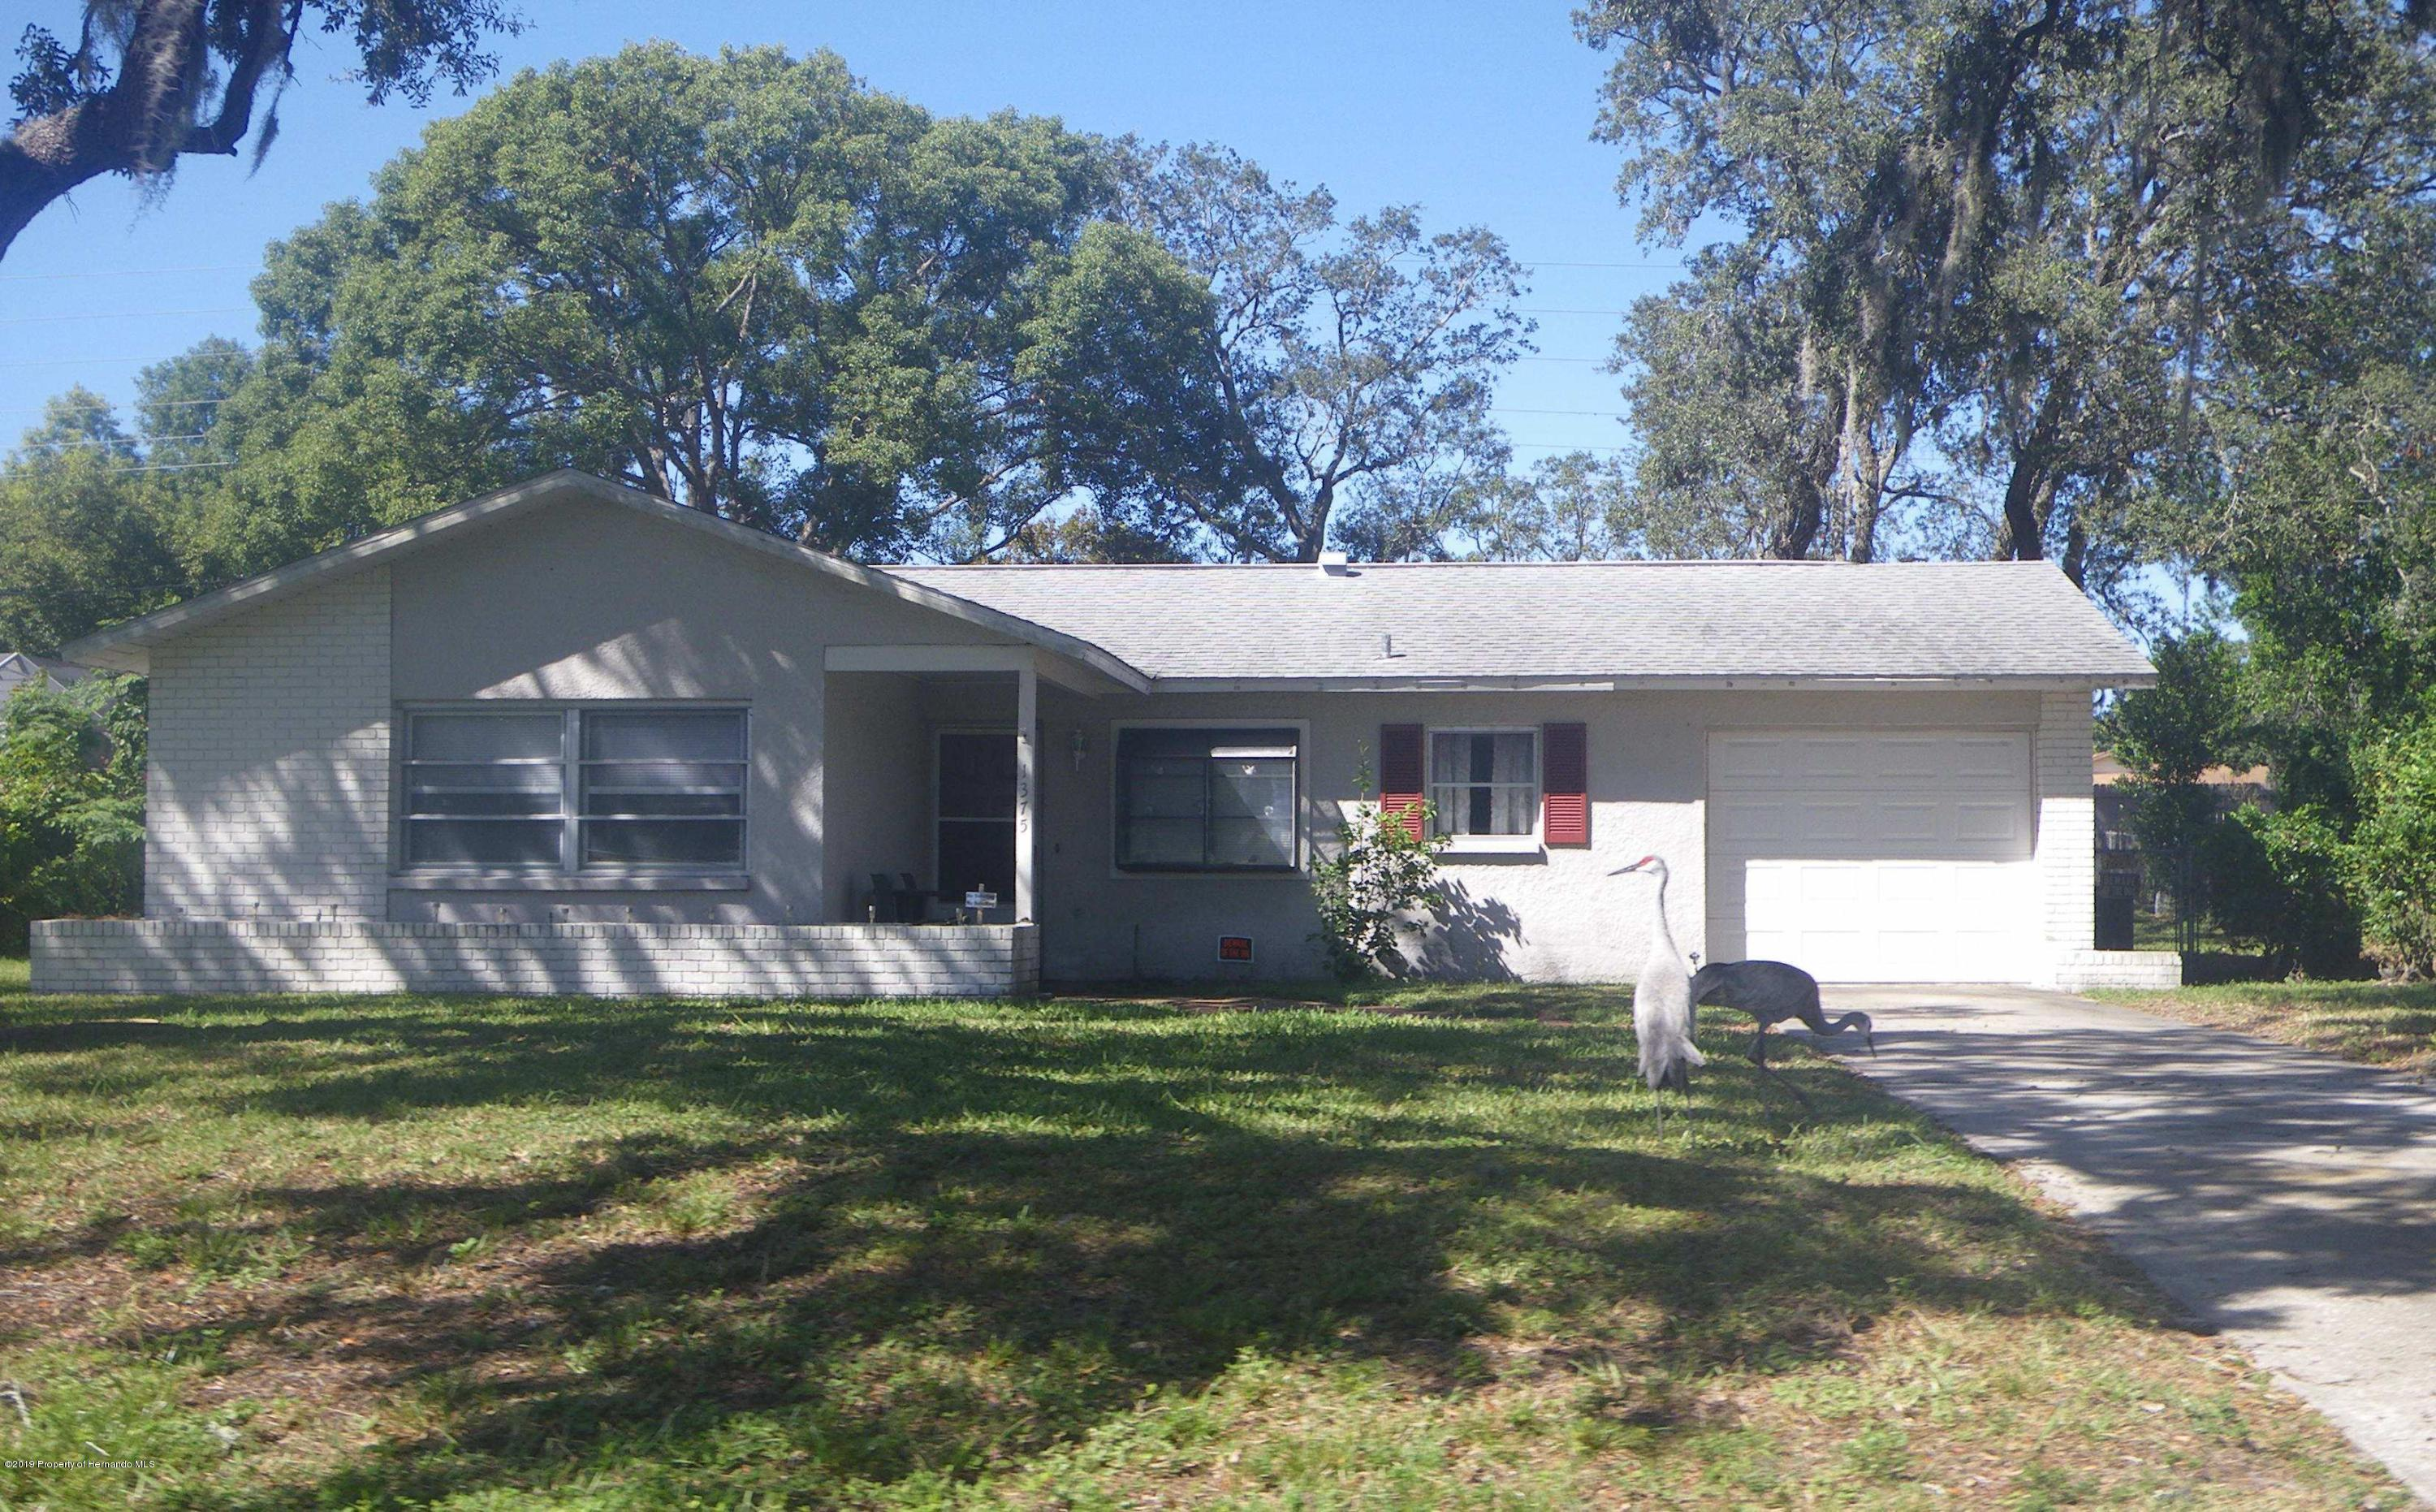 1375 Kenlake Avenue, Spring Hill, Florida 34606, 2 Bedrooms Bedrooms, ,2 BathroomsBathrooms,Residential,For Sale,Kenlake,2200596